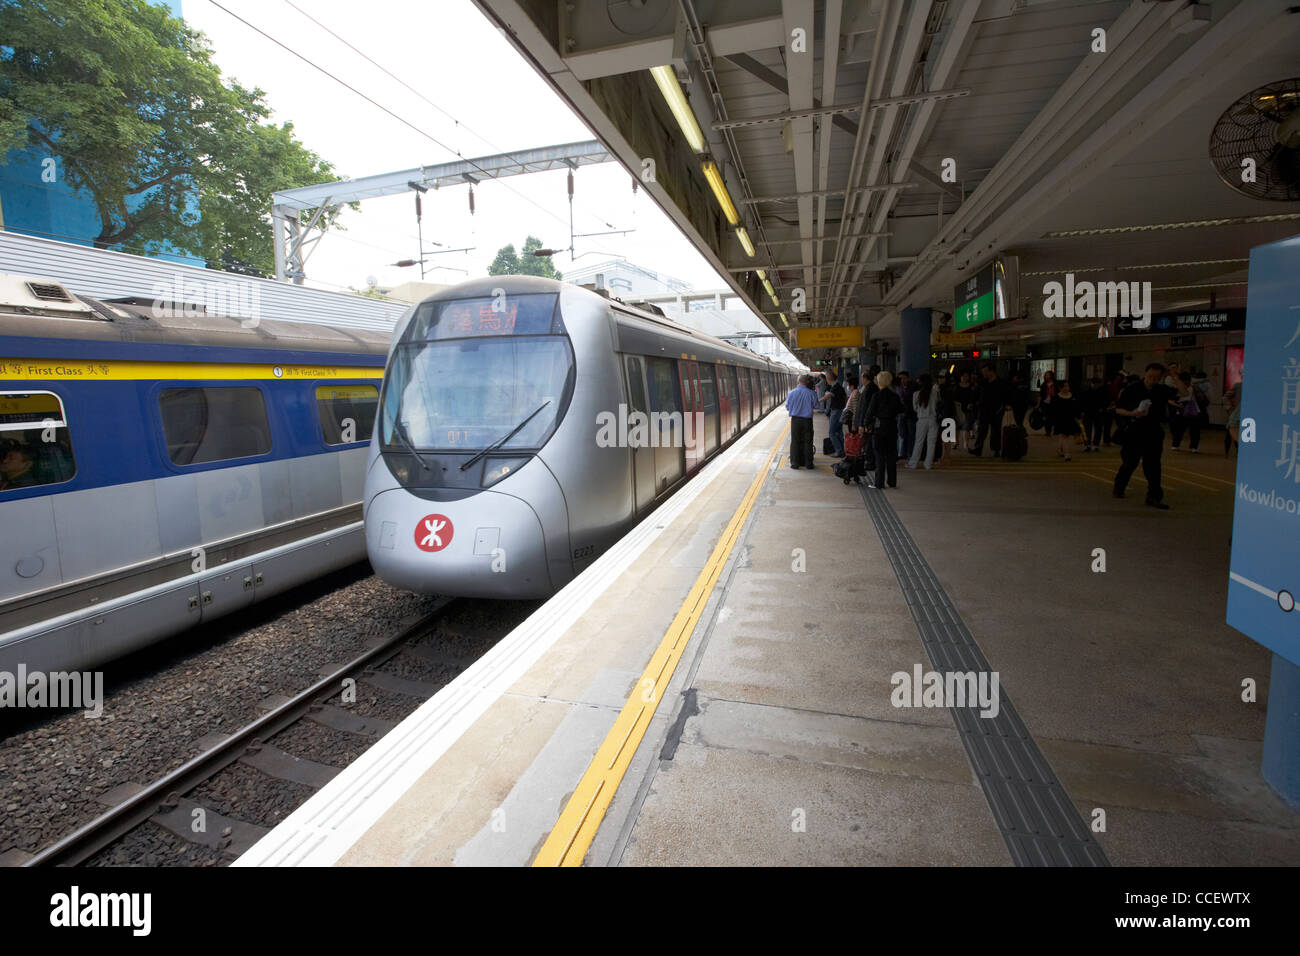 mtr train on overground line former kcr kowloon canton railway kowloon tong hong kong hksar china asia - Stock Image